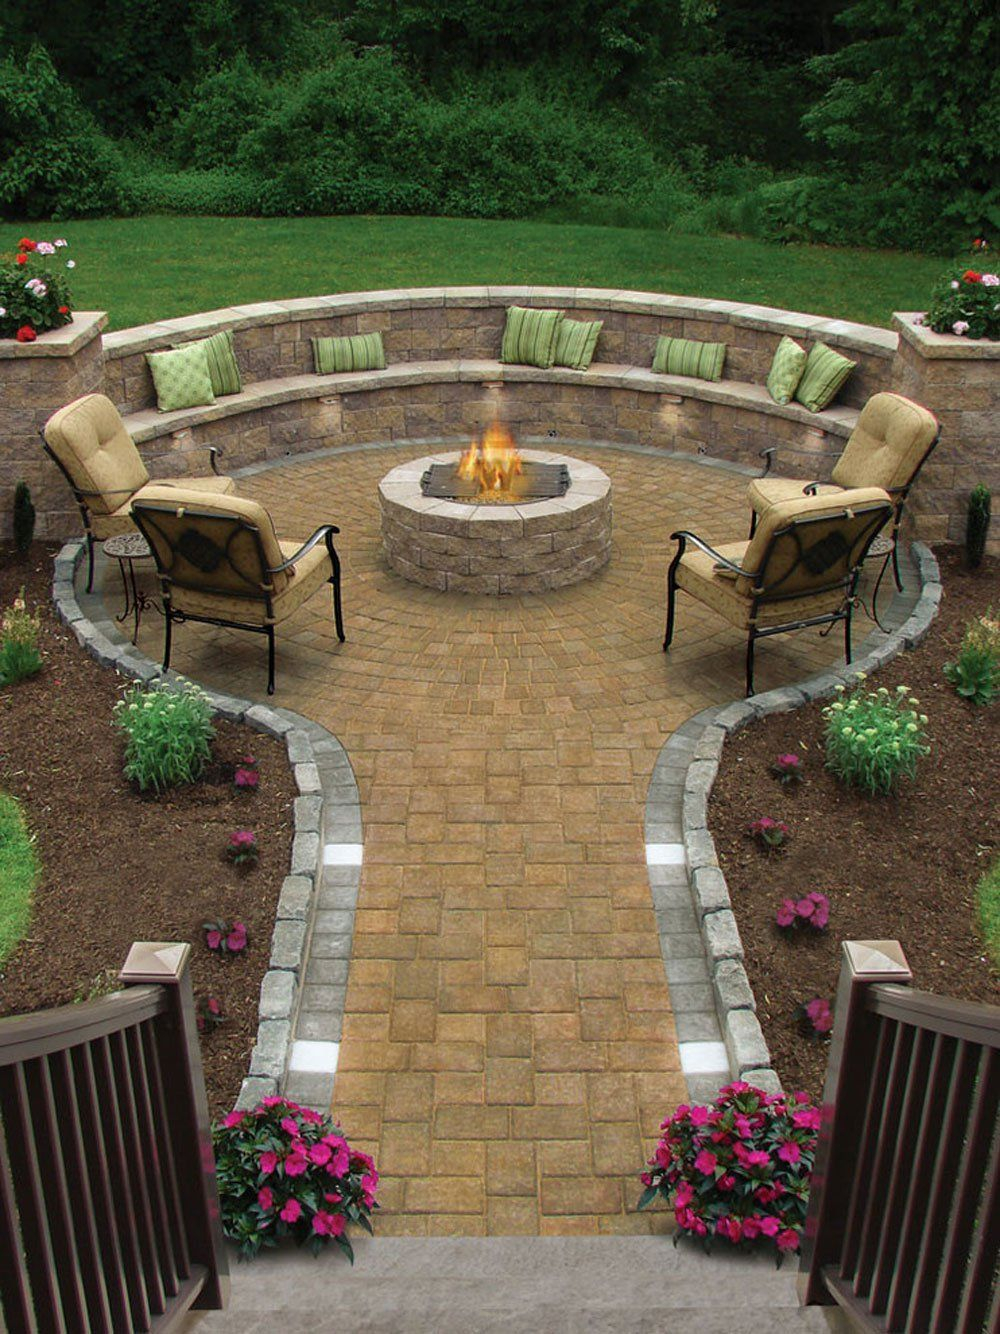 17 Of The Most Amazing Seating Area Around The Fire Pit Ever for measurements 1000 X 1334